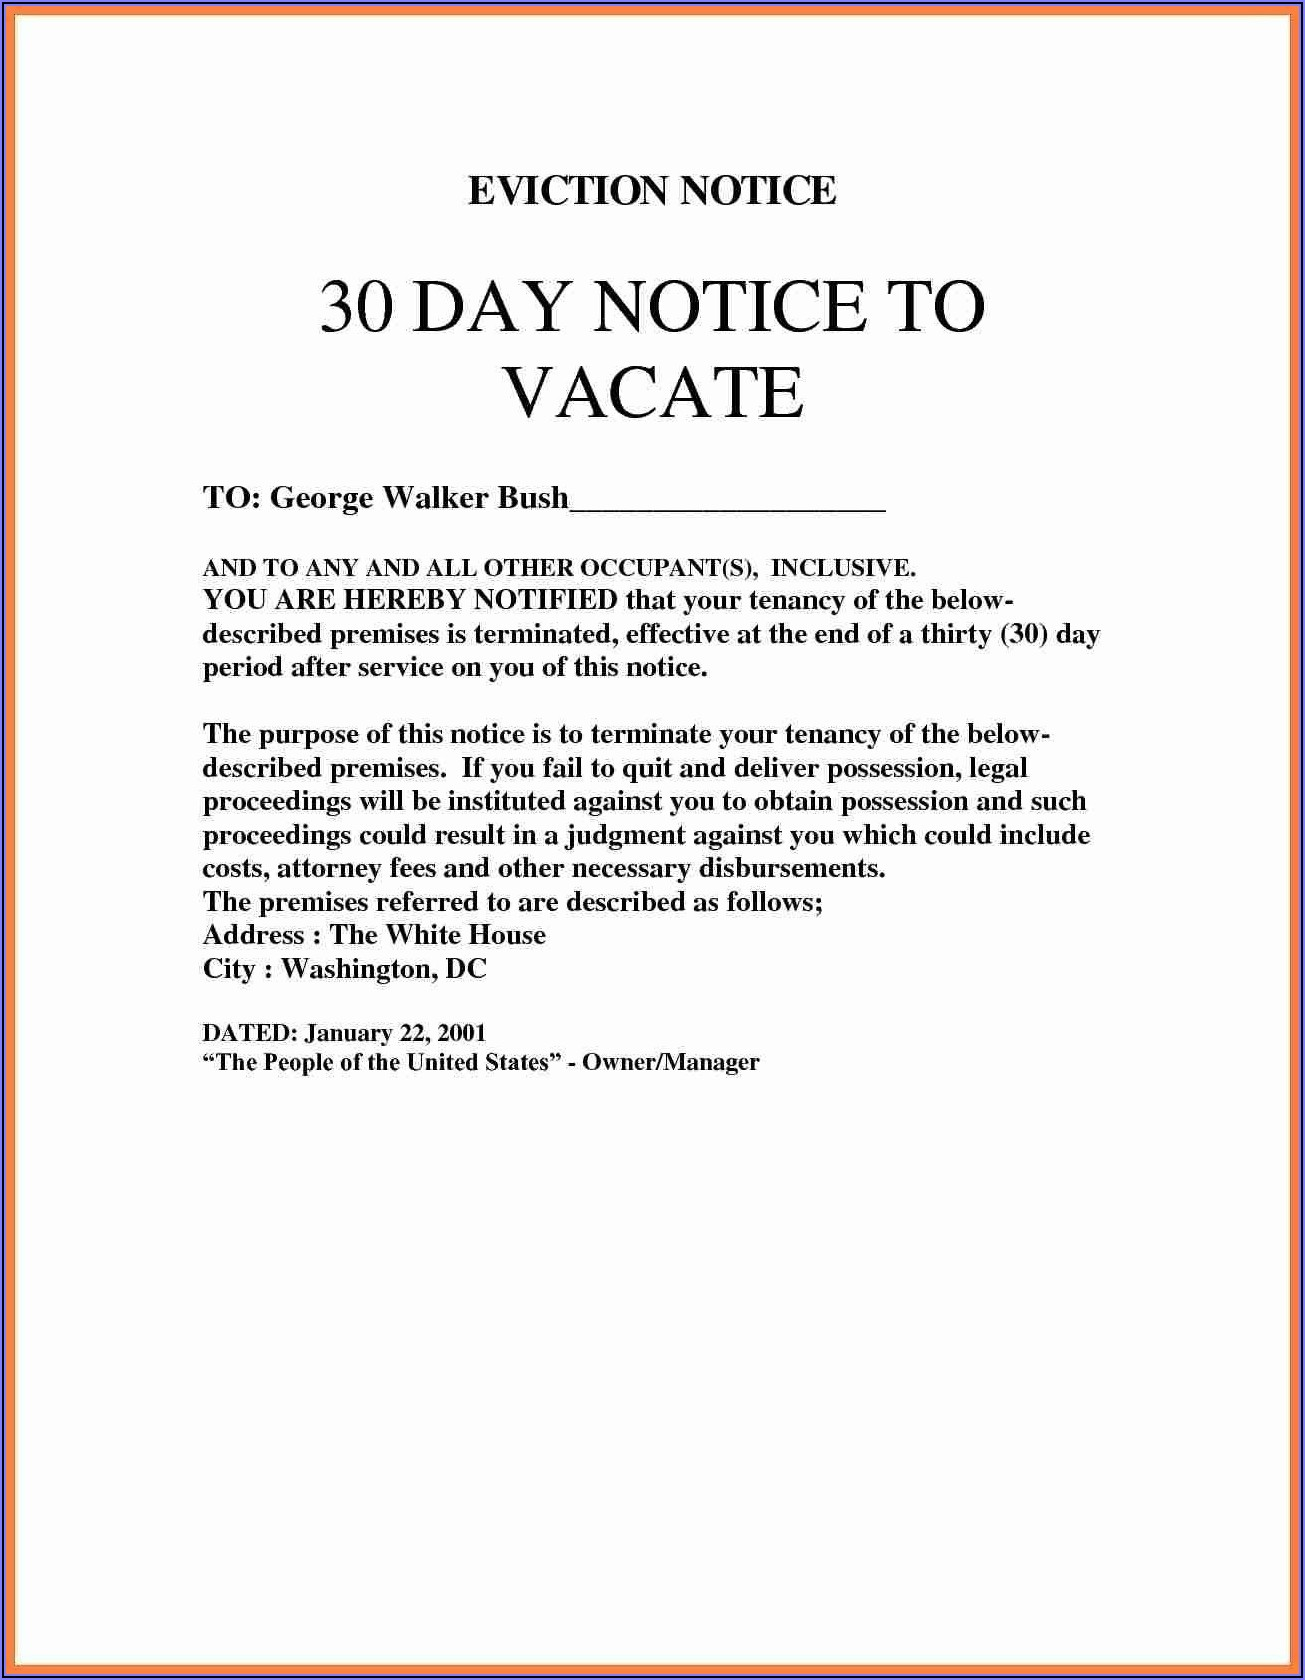 Blank Eviction Notice Form